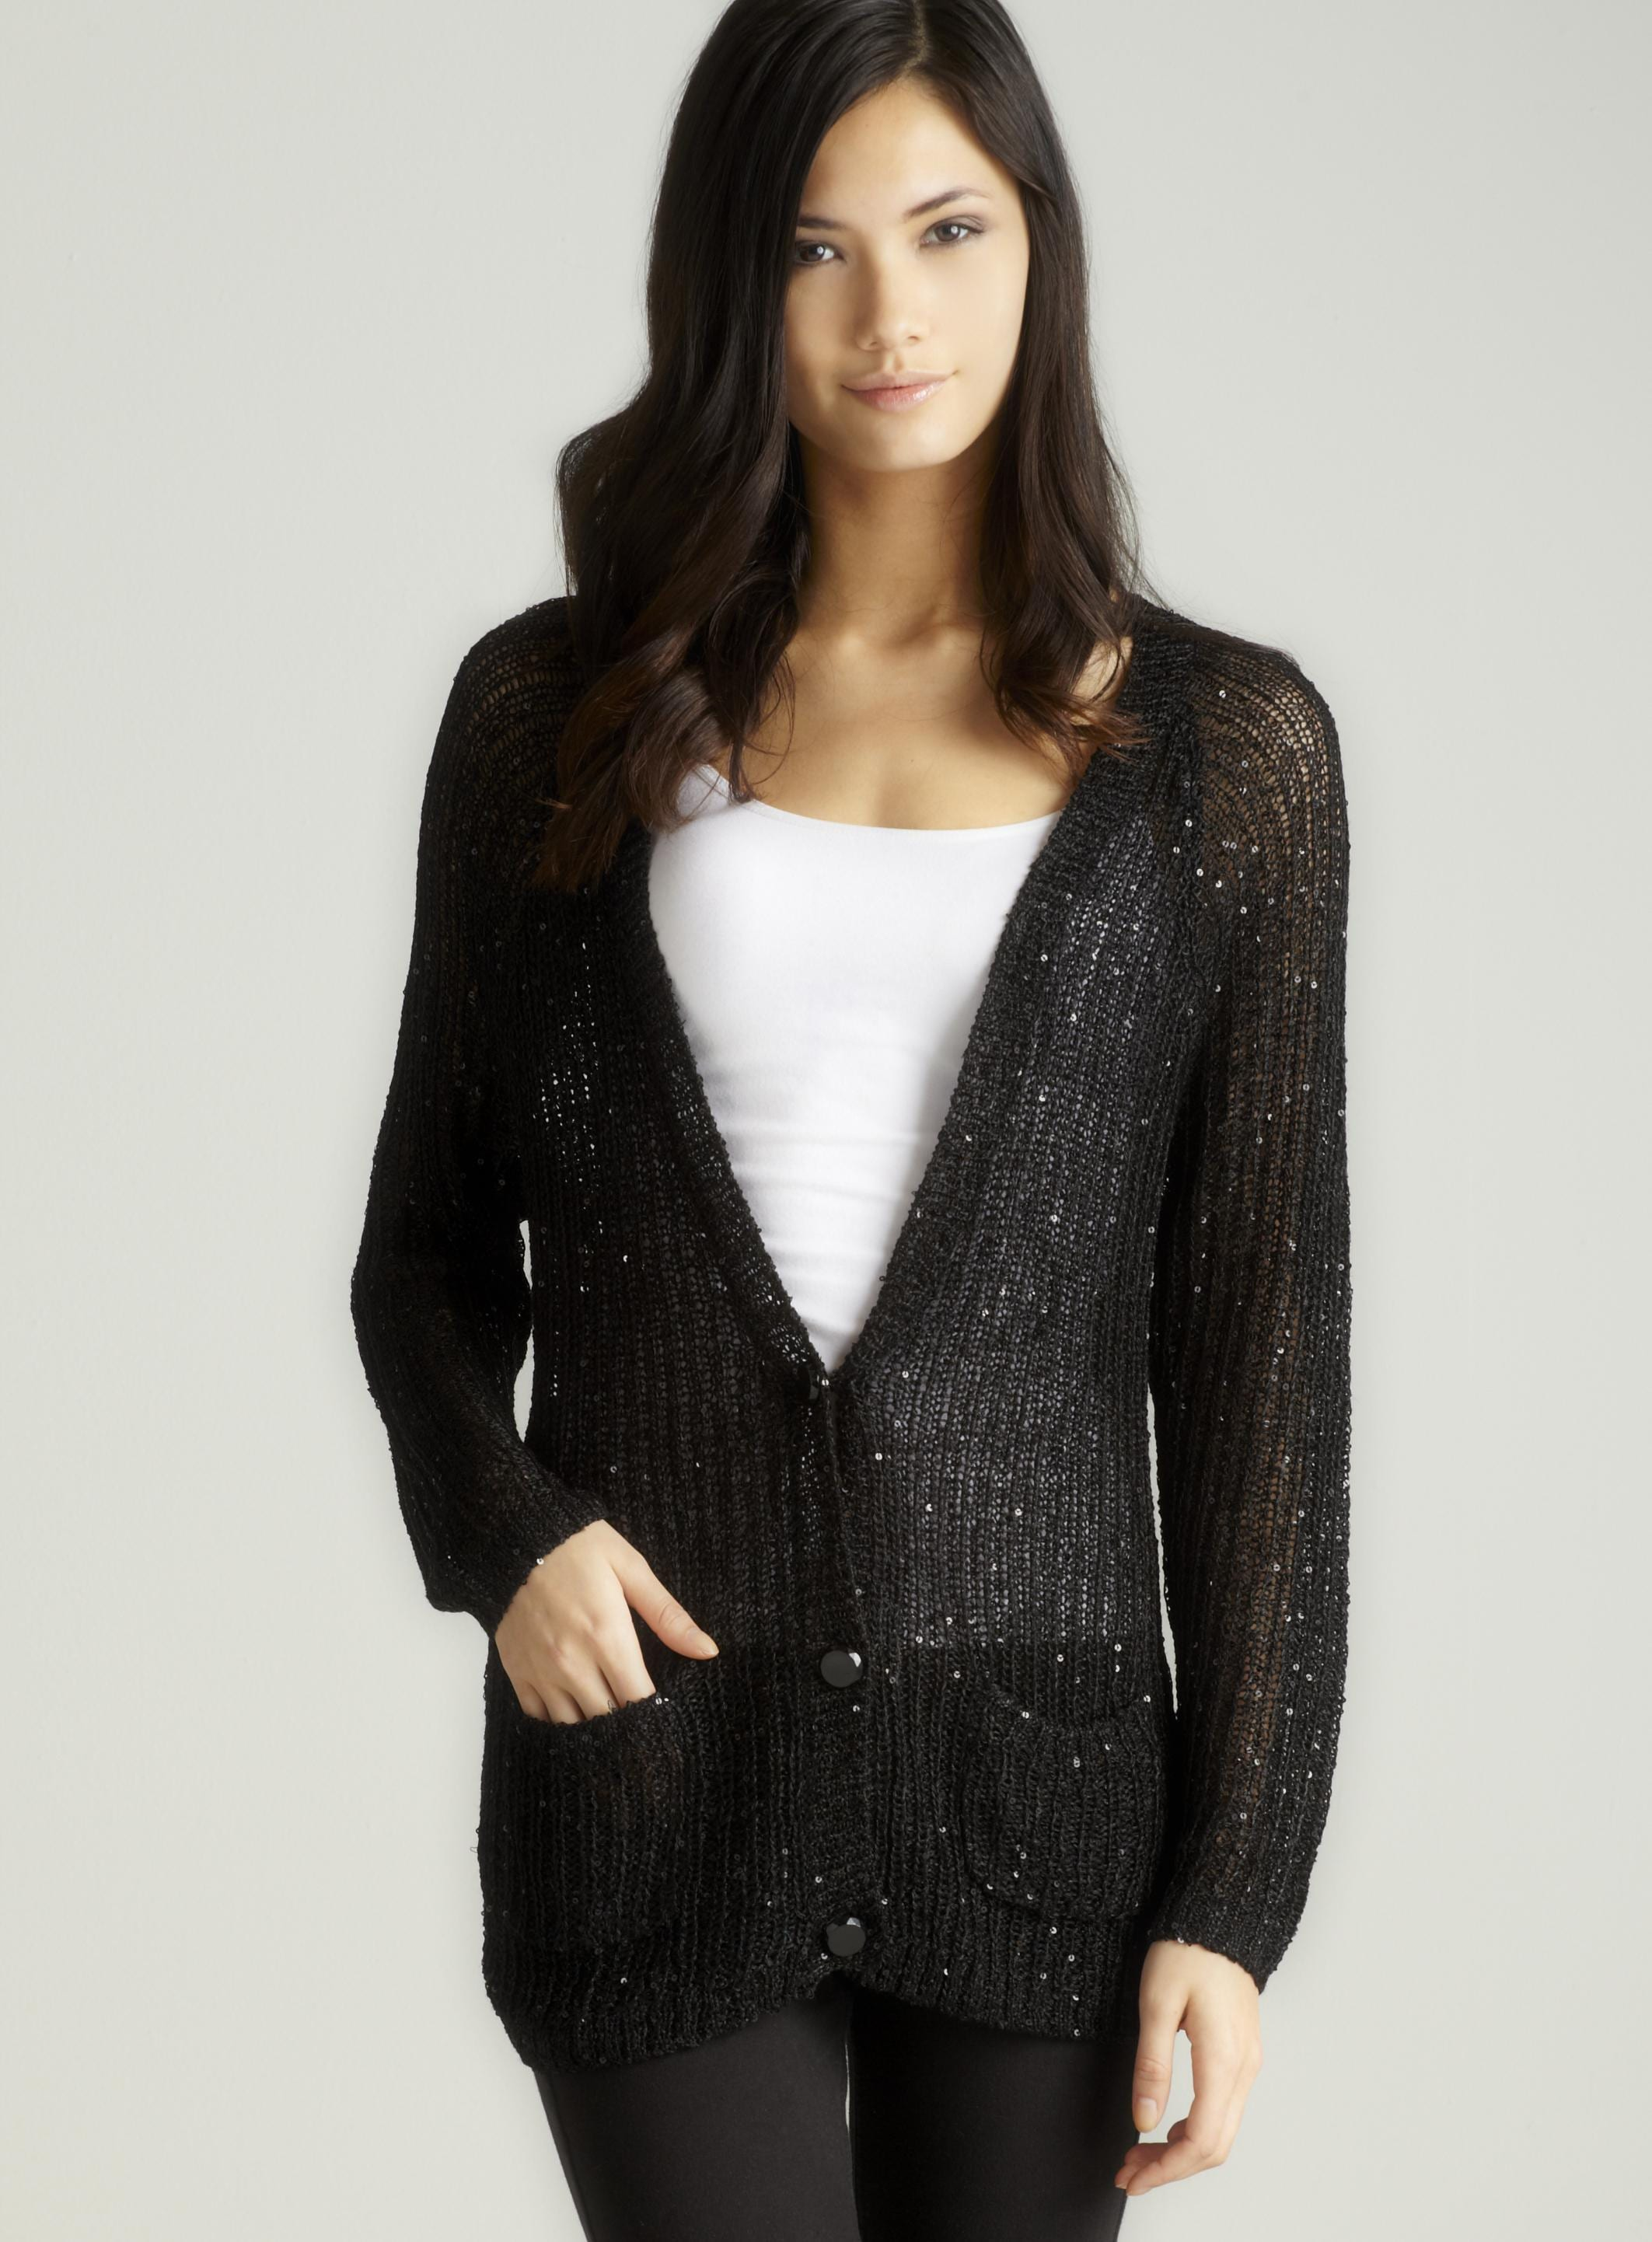 Vertigo Two btn sequin cardi in black - Thumbnail 0